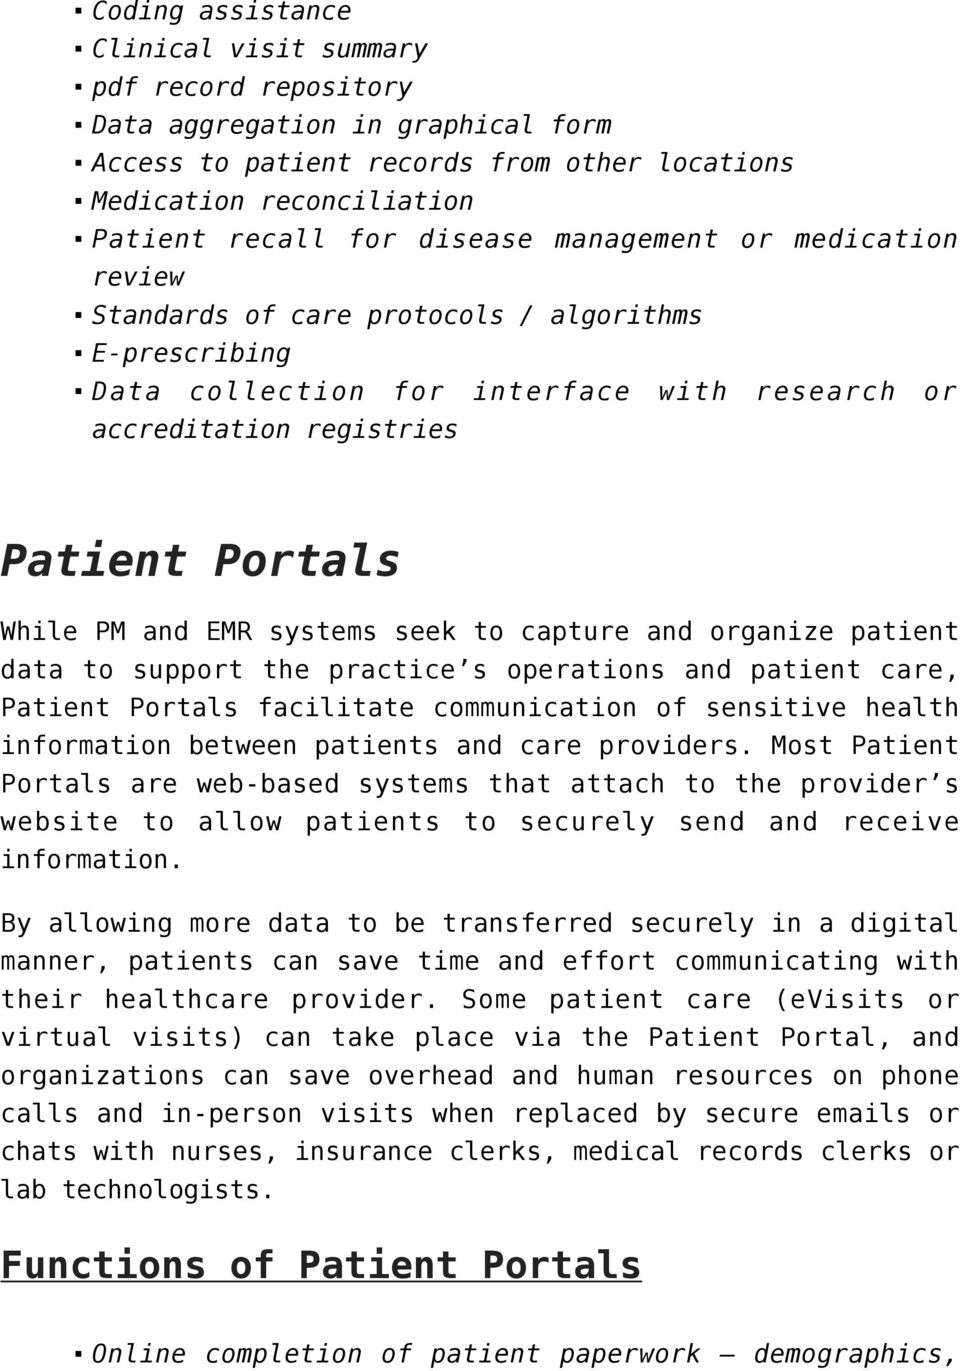 seek to capture and organize patient data to support the practice s operations and patient care, Patient Portals facilitate communication of sensitive health information between patients and care